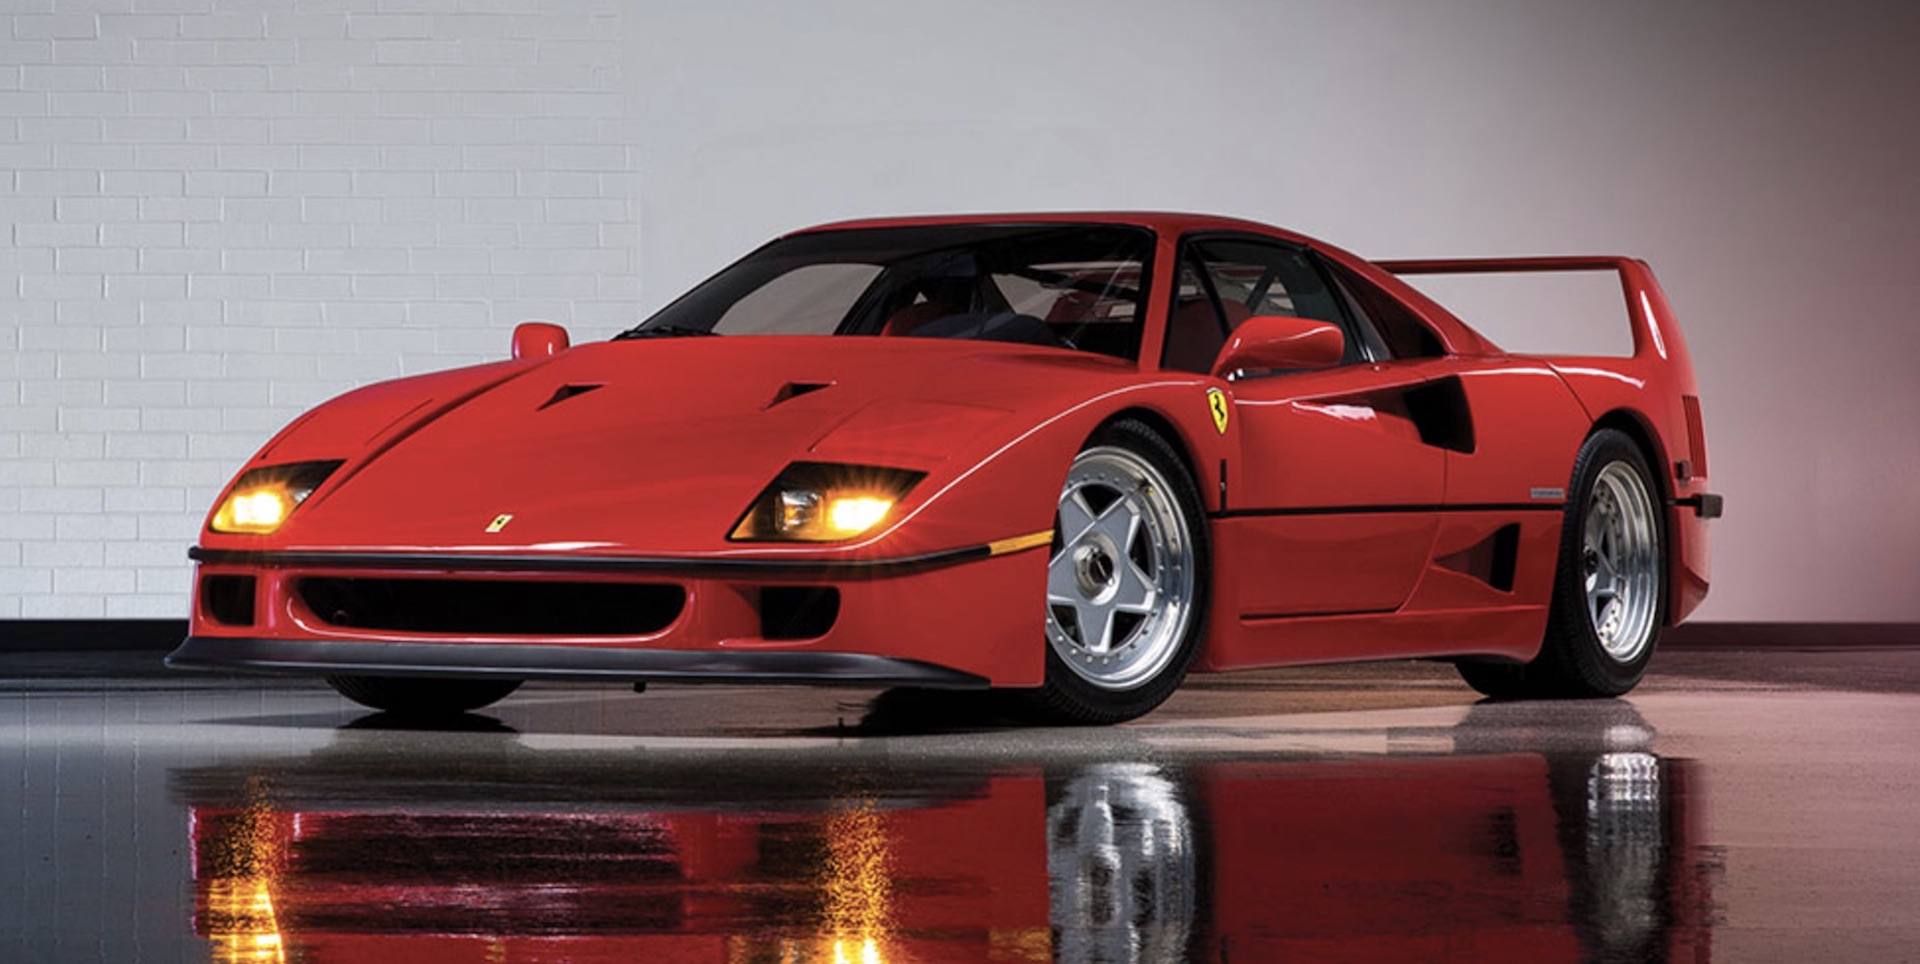 Ferrari F40 For Sale >> Not One But Two Ferrari F40s Are For Sale This Week